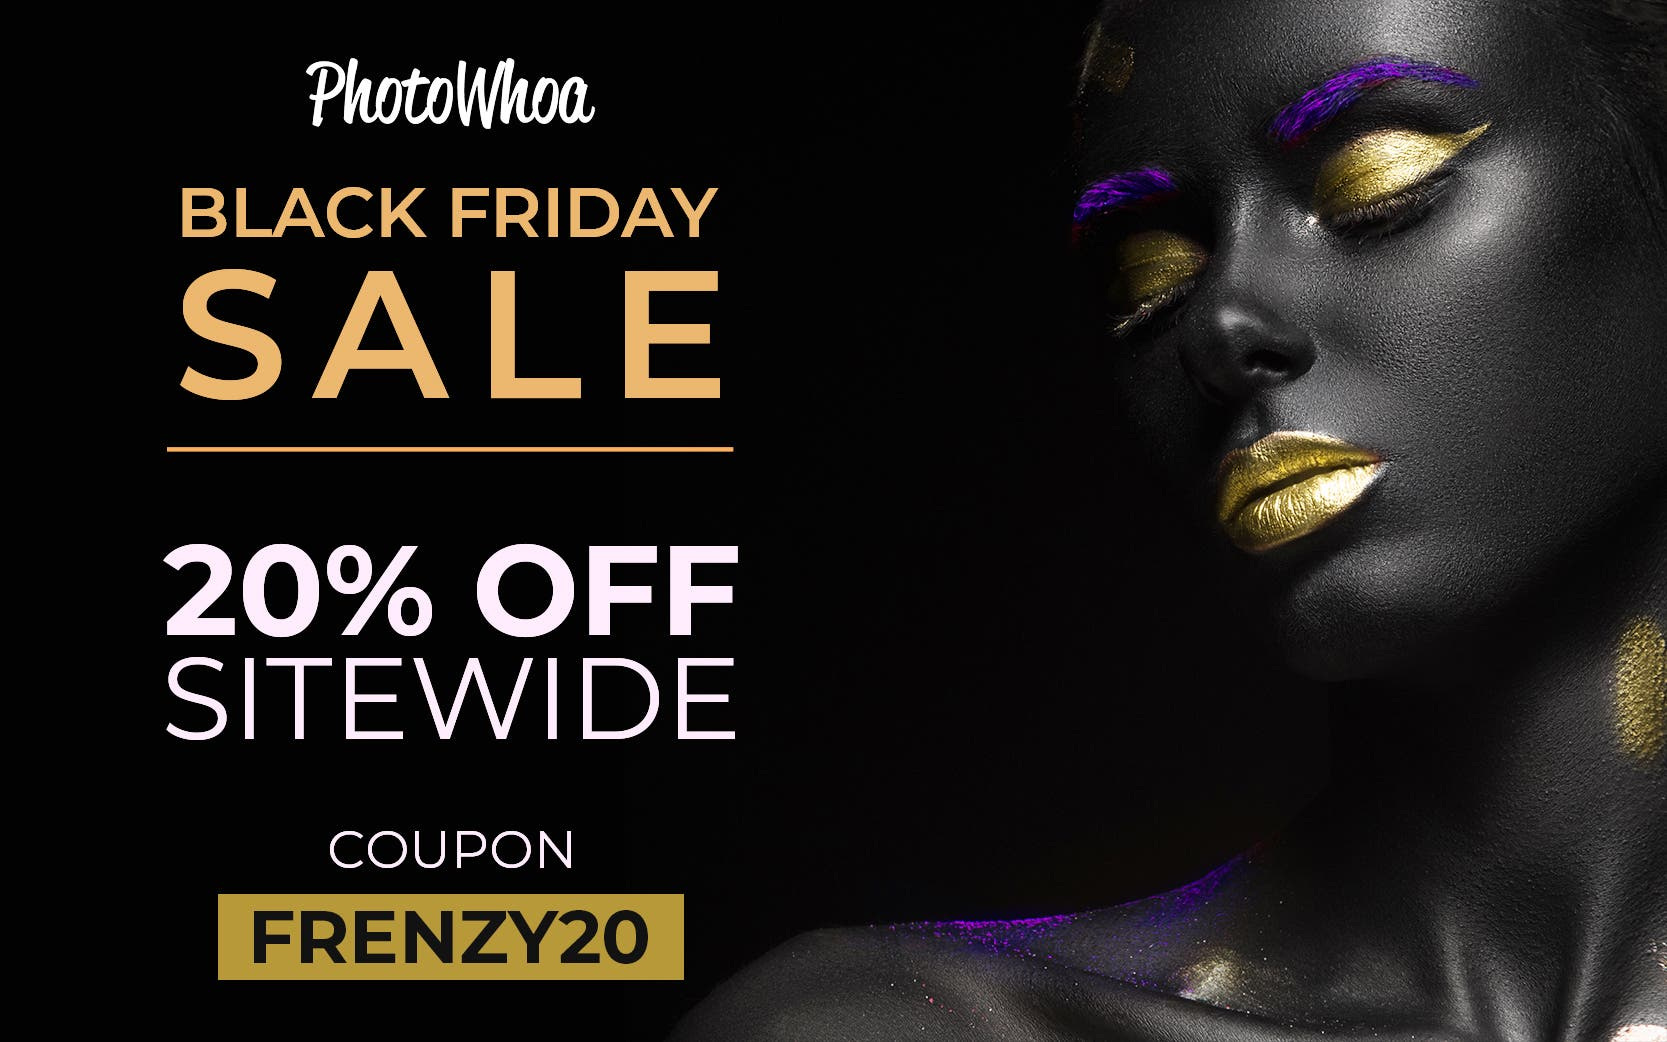 Save an Extra 20% Sitewide on Presets, Actions, Overlays and Software